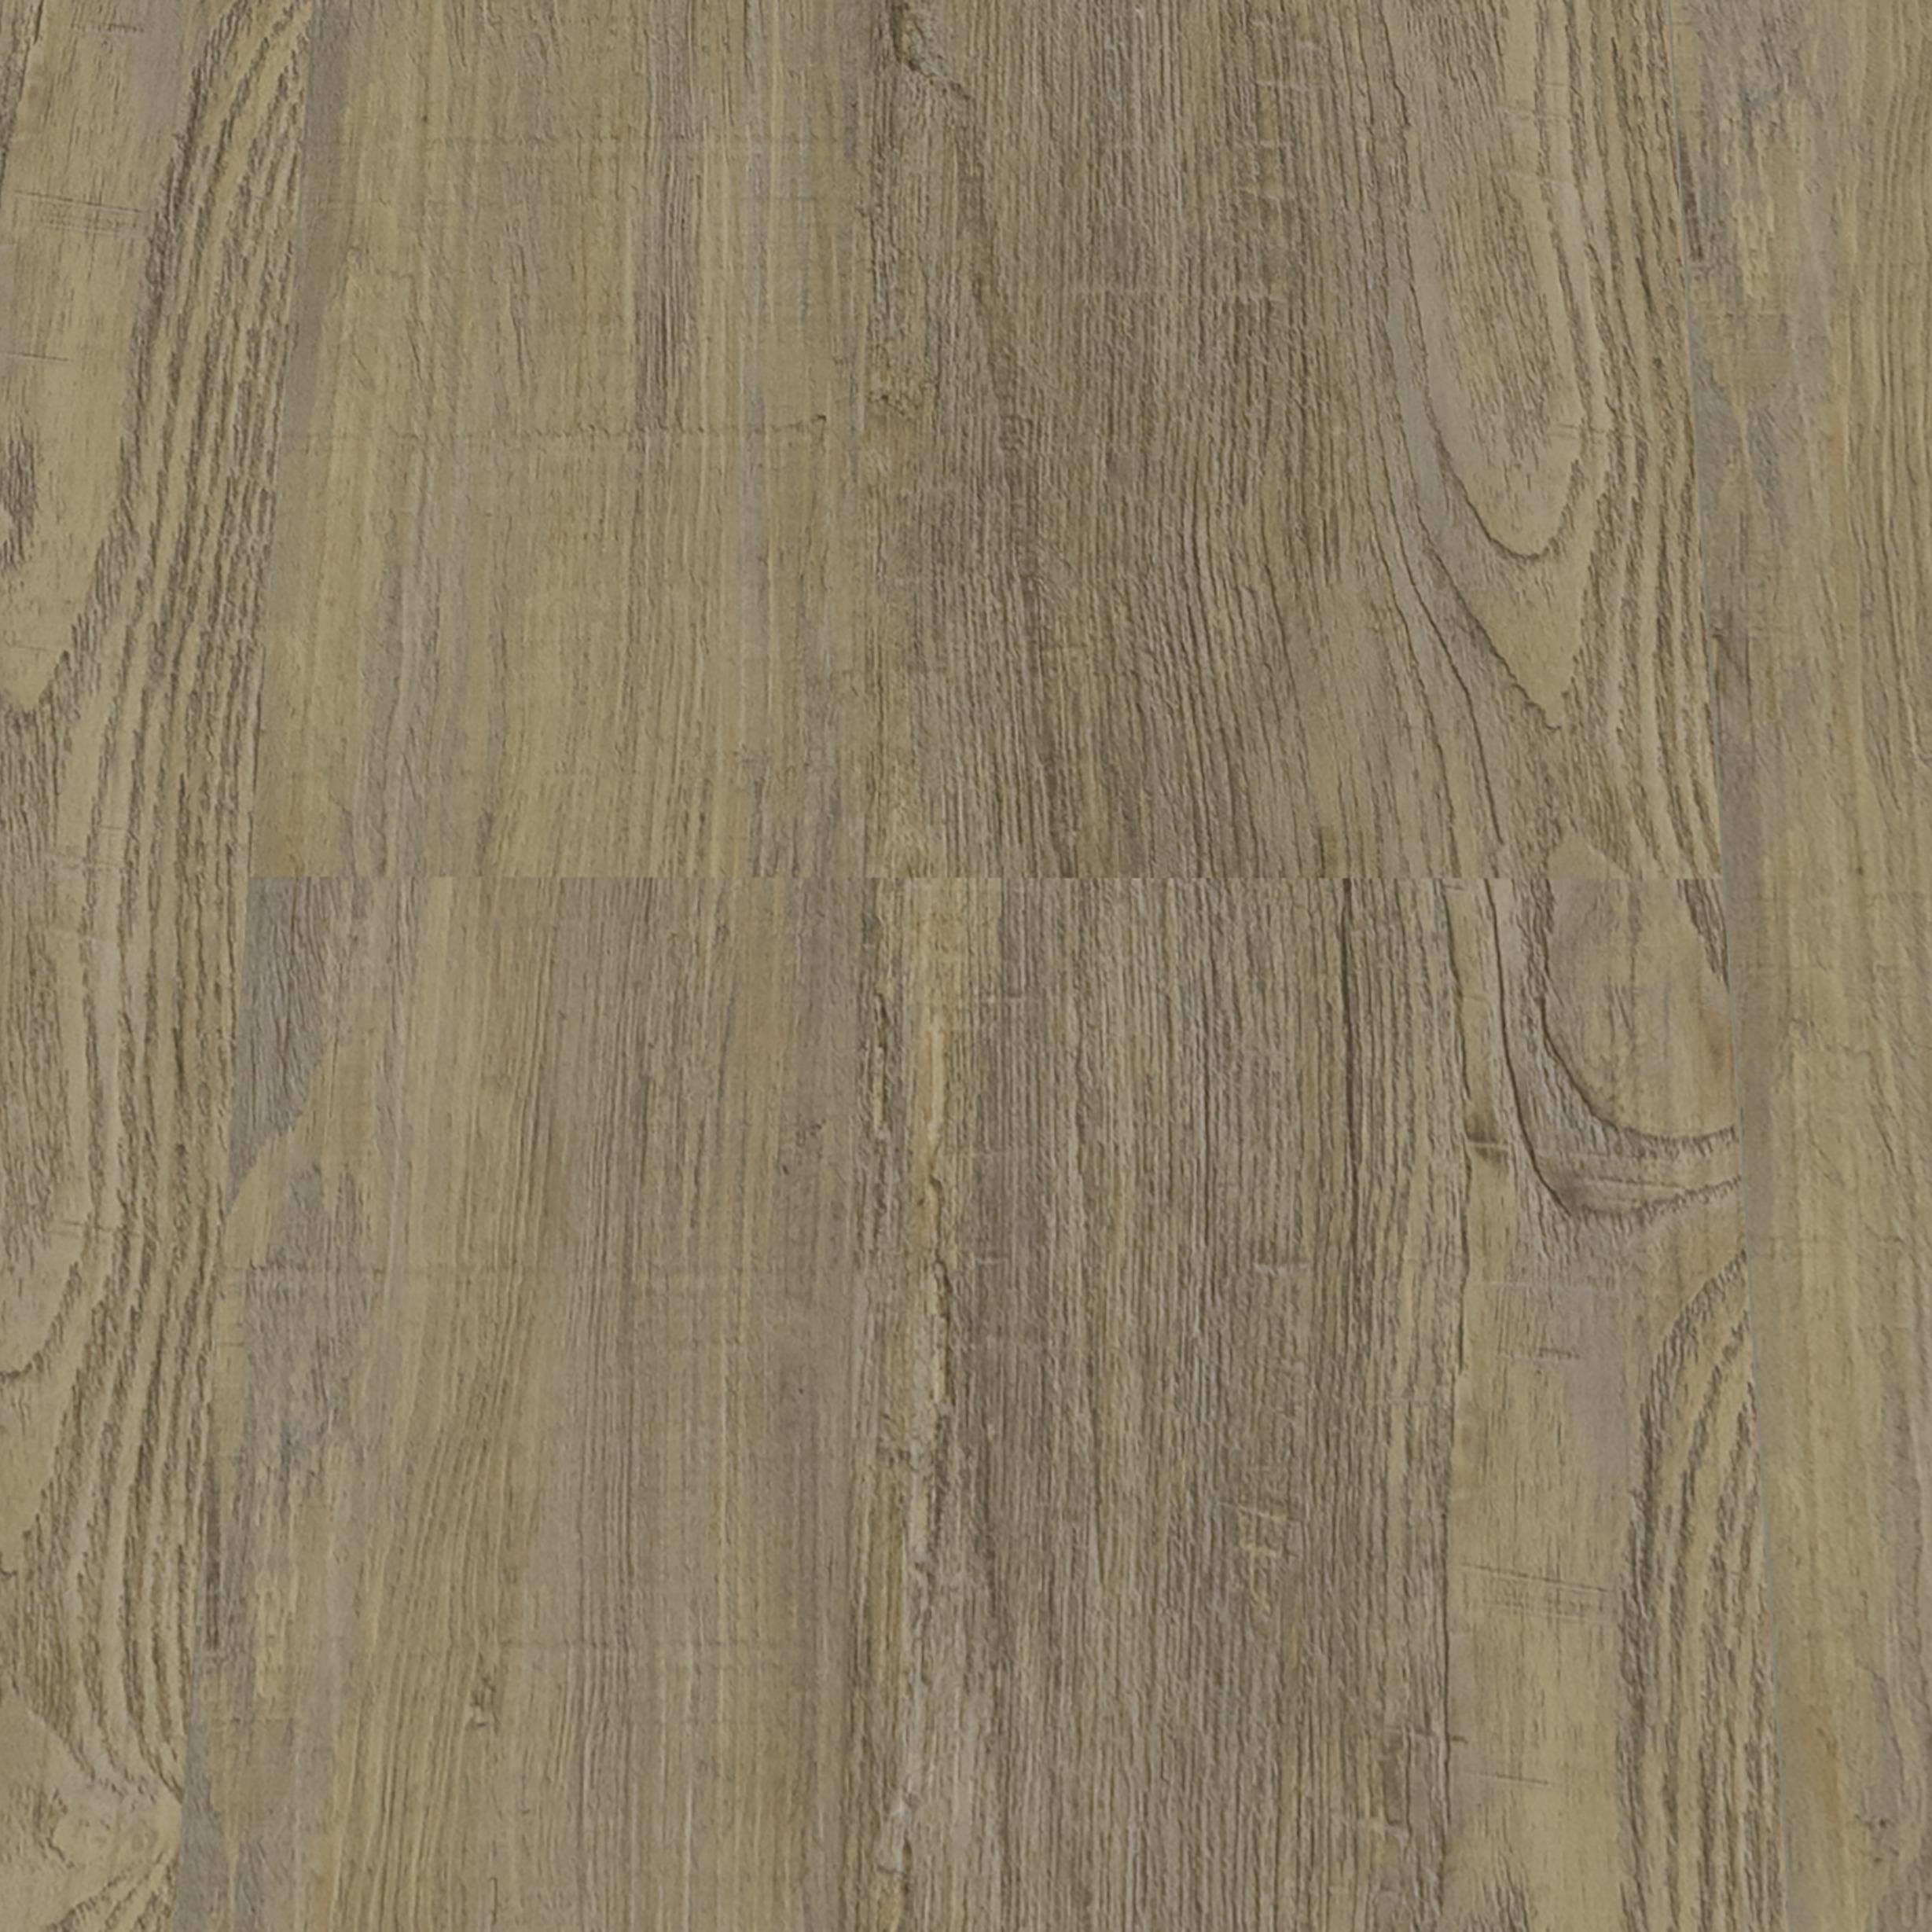 Flexxfloors Click Basic Extra Breed PVC Vloerdeel Stelvio 4 mm 2,79 m2